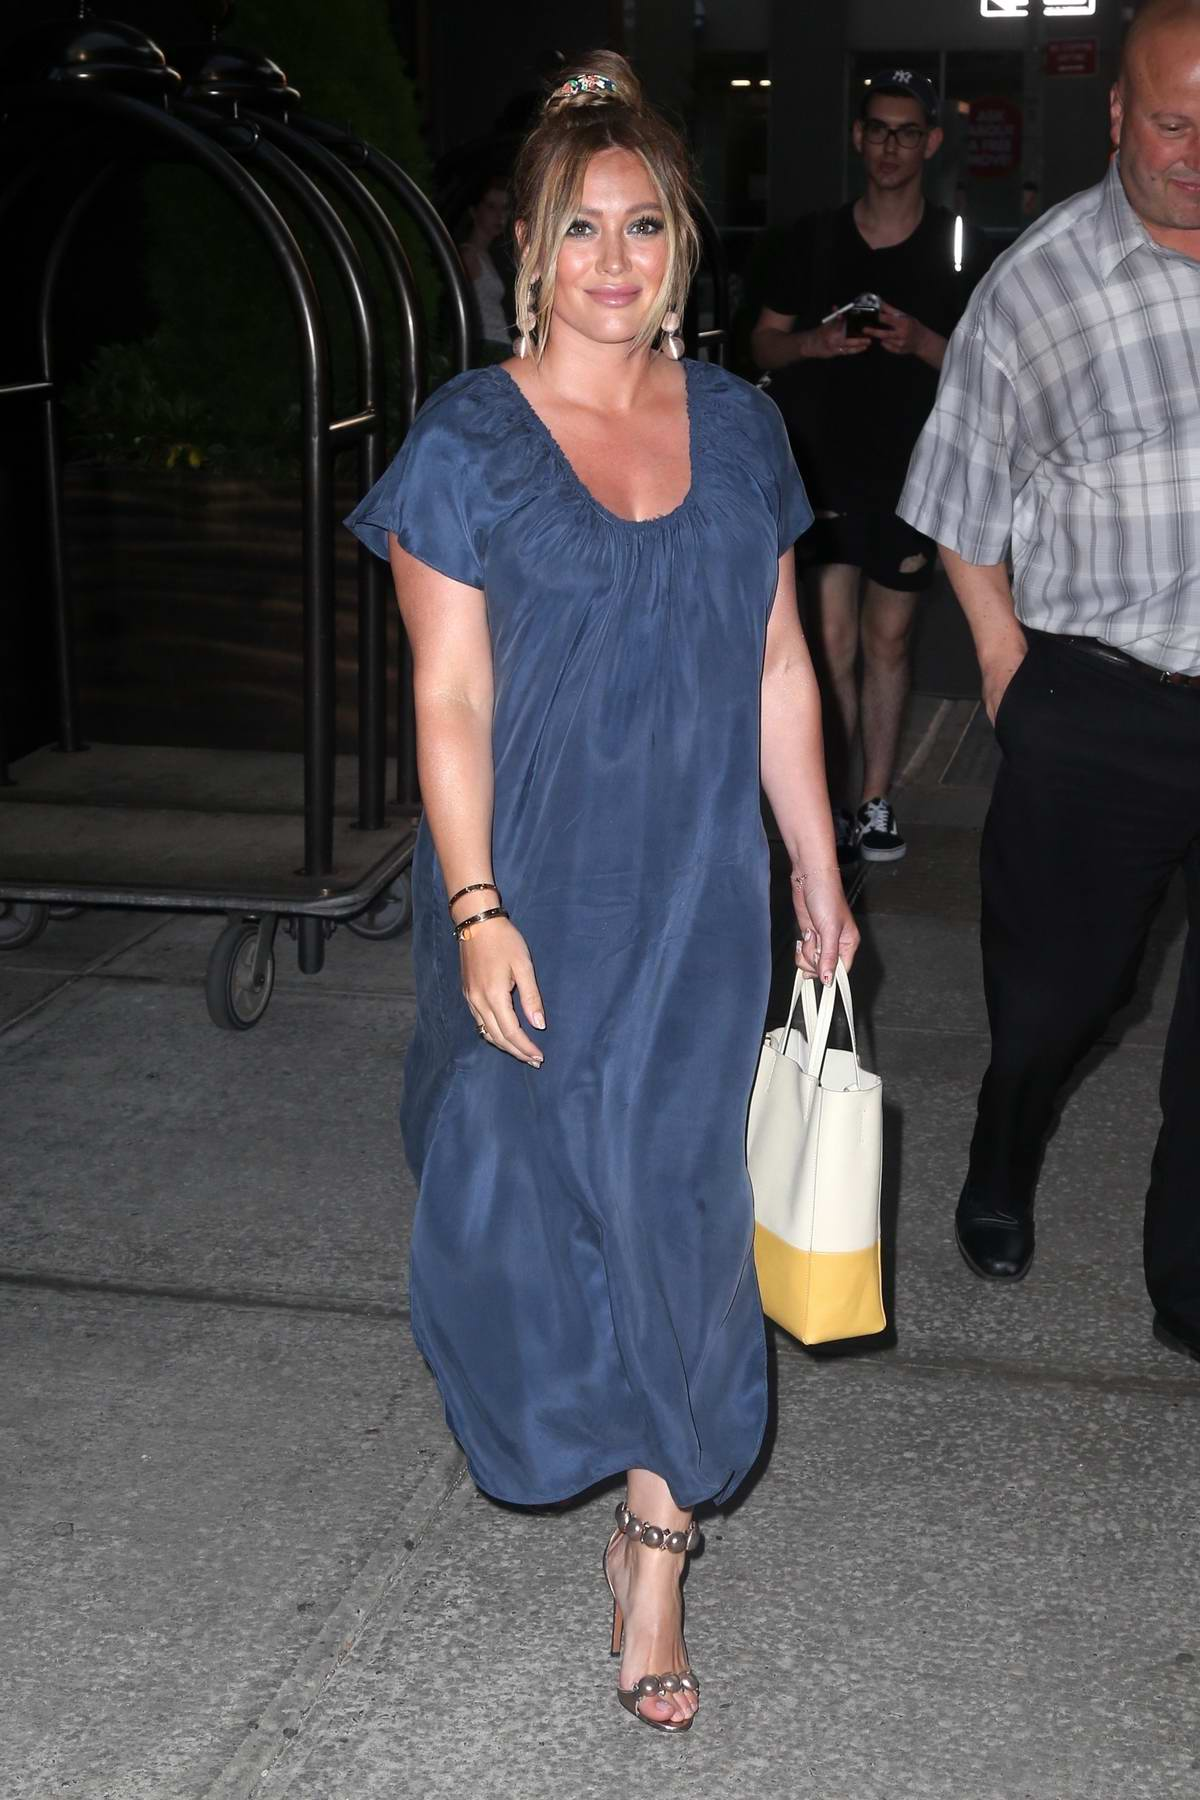 Hilary Duff wears blue dress as she leaves for the season finale party for 'Younger' in New York City